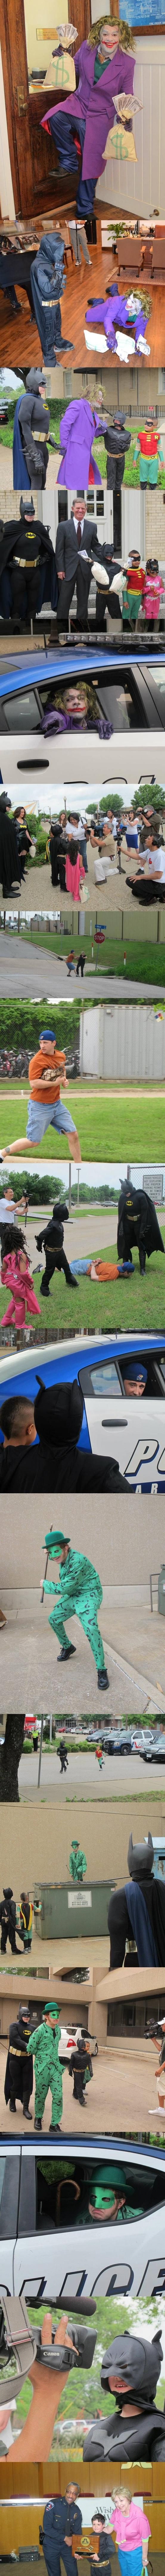 7 year old Kyle has leukemia and one wish. That wish? To be Batman. The local police helped him out with this wish.